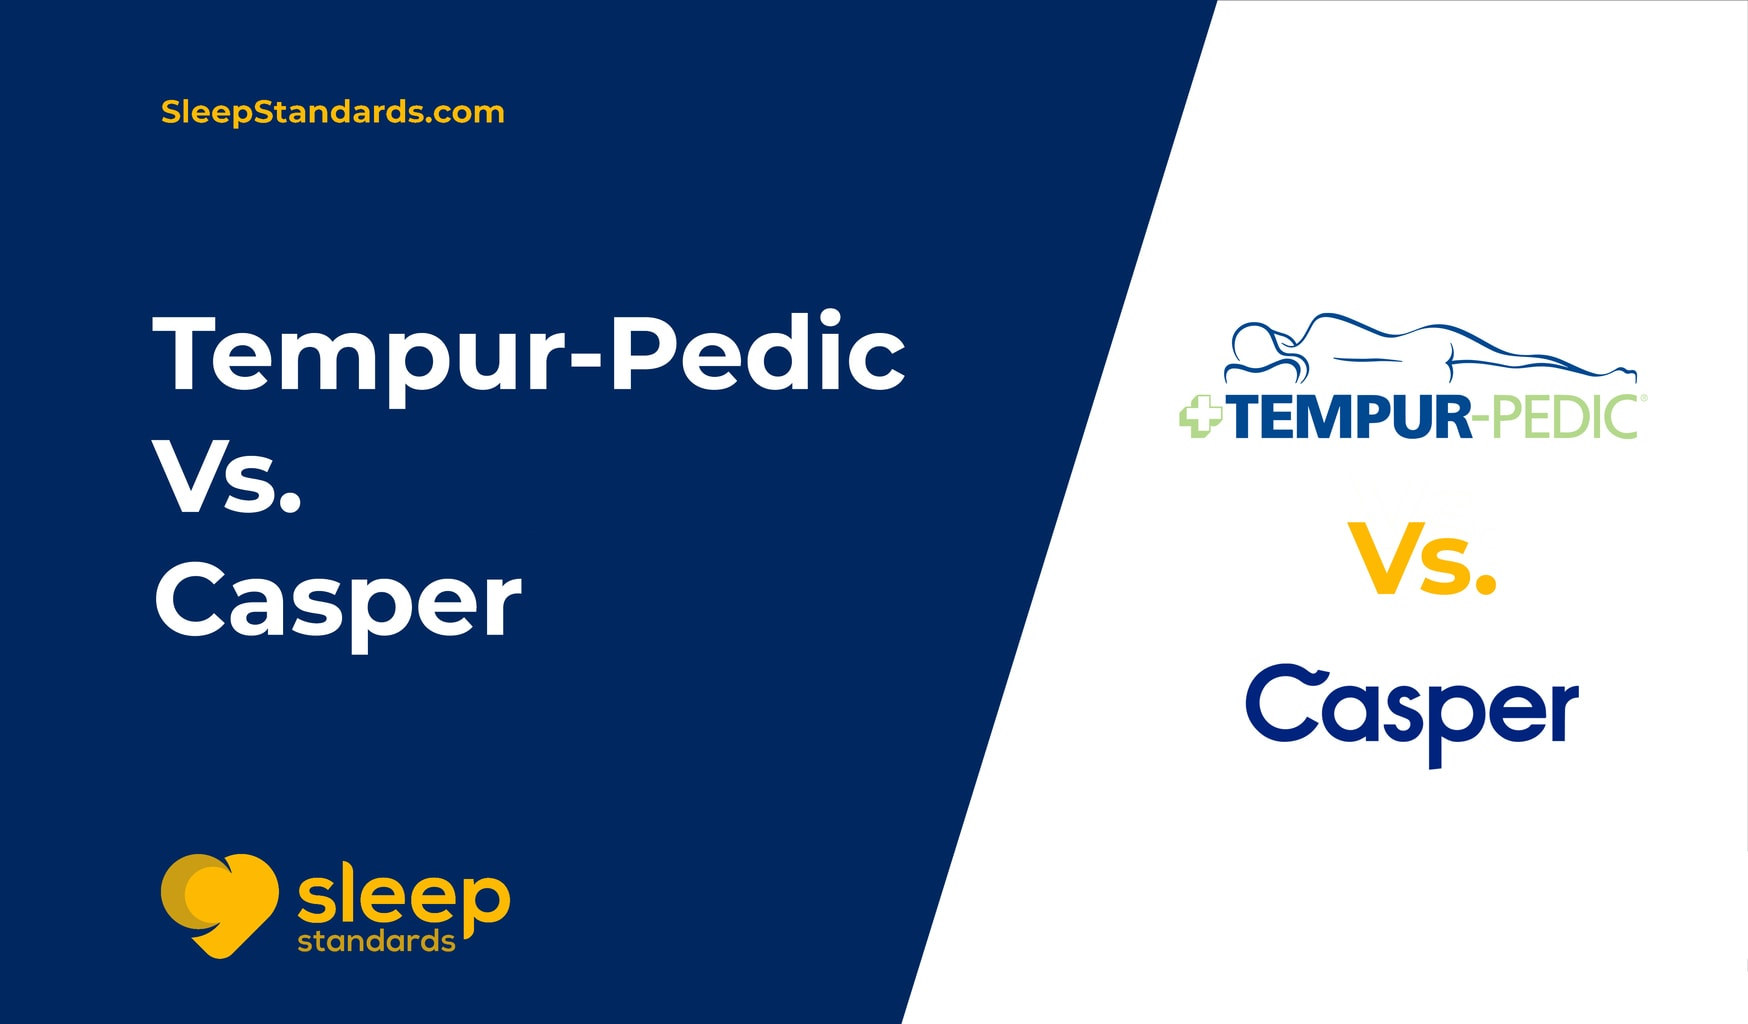 Tempur-pedic vs Casper